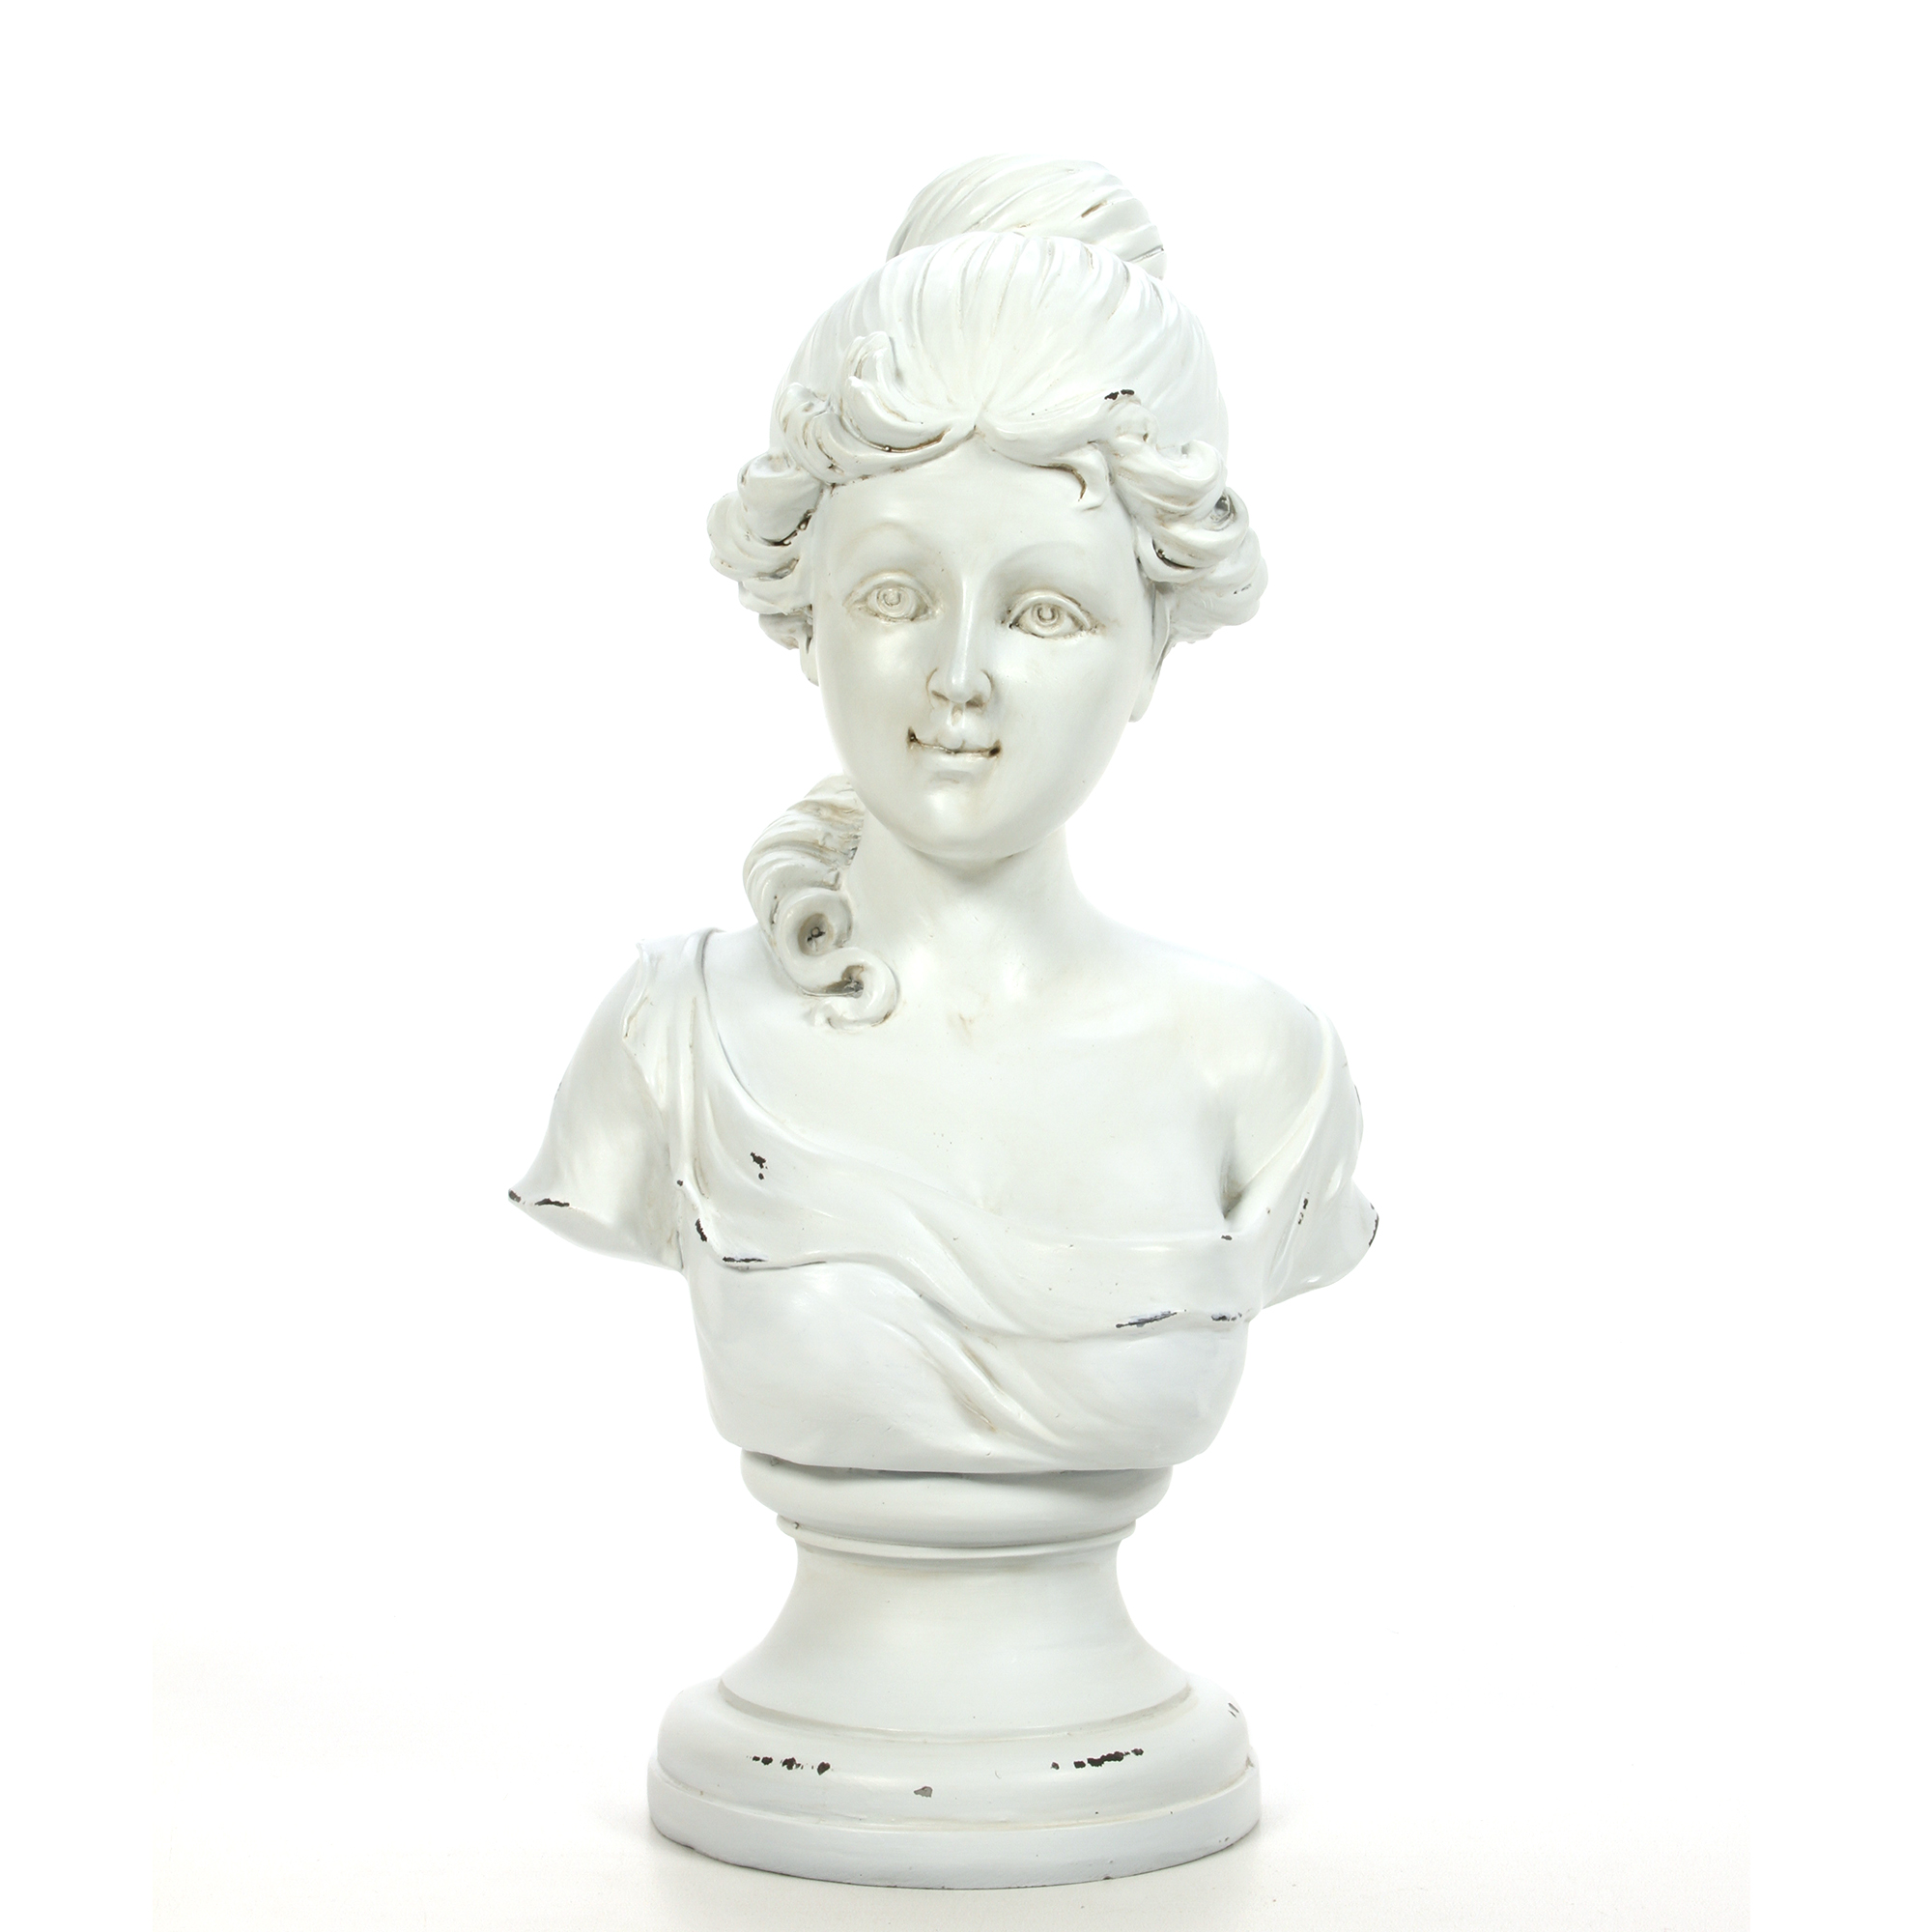 Decorative Tabletop Victorian Bust Sculpture by Hosley China Industries